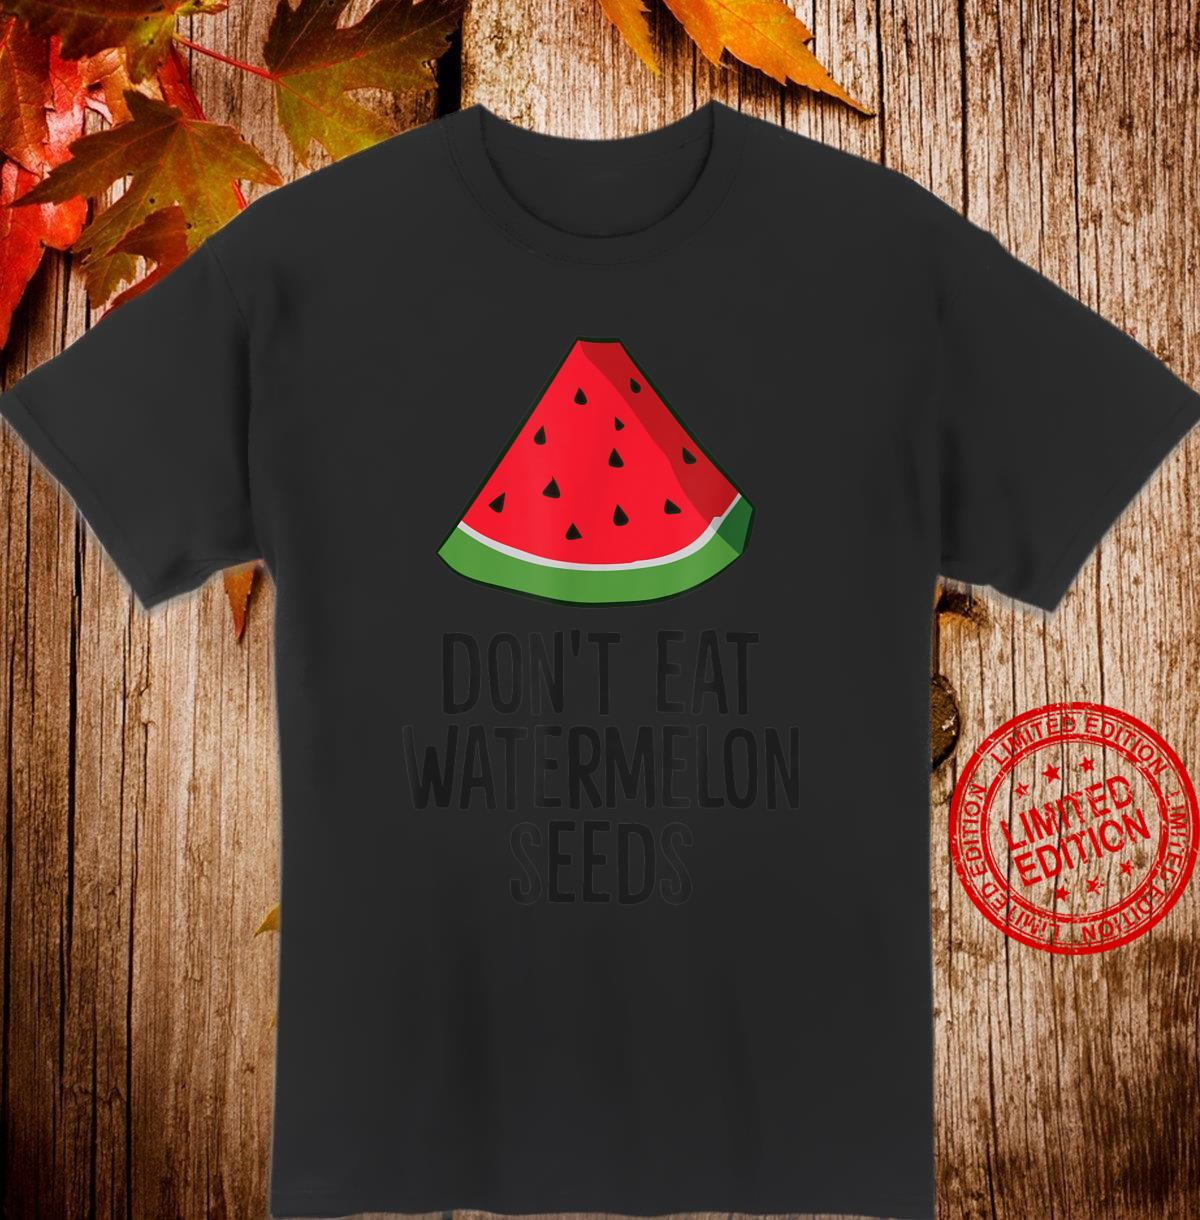 Pregnancy Watermelon Don't Eat Watermelon Seeds Shirt